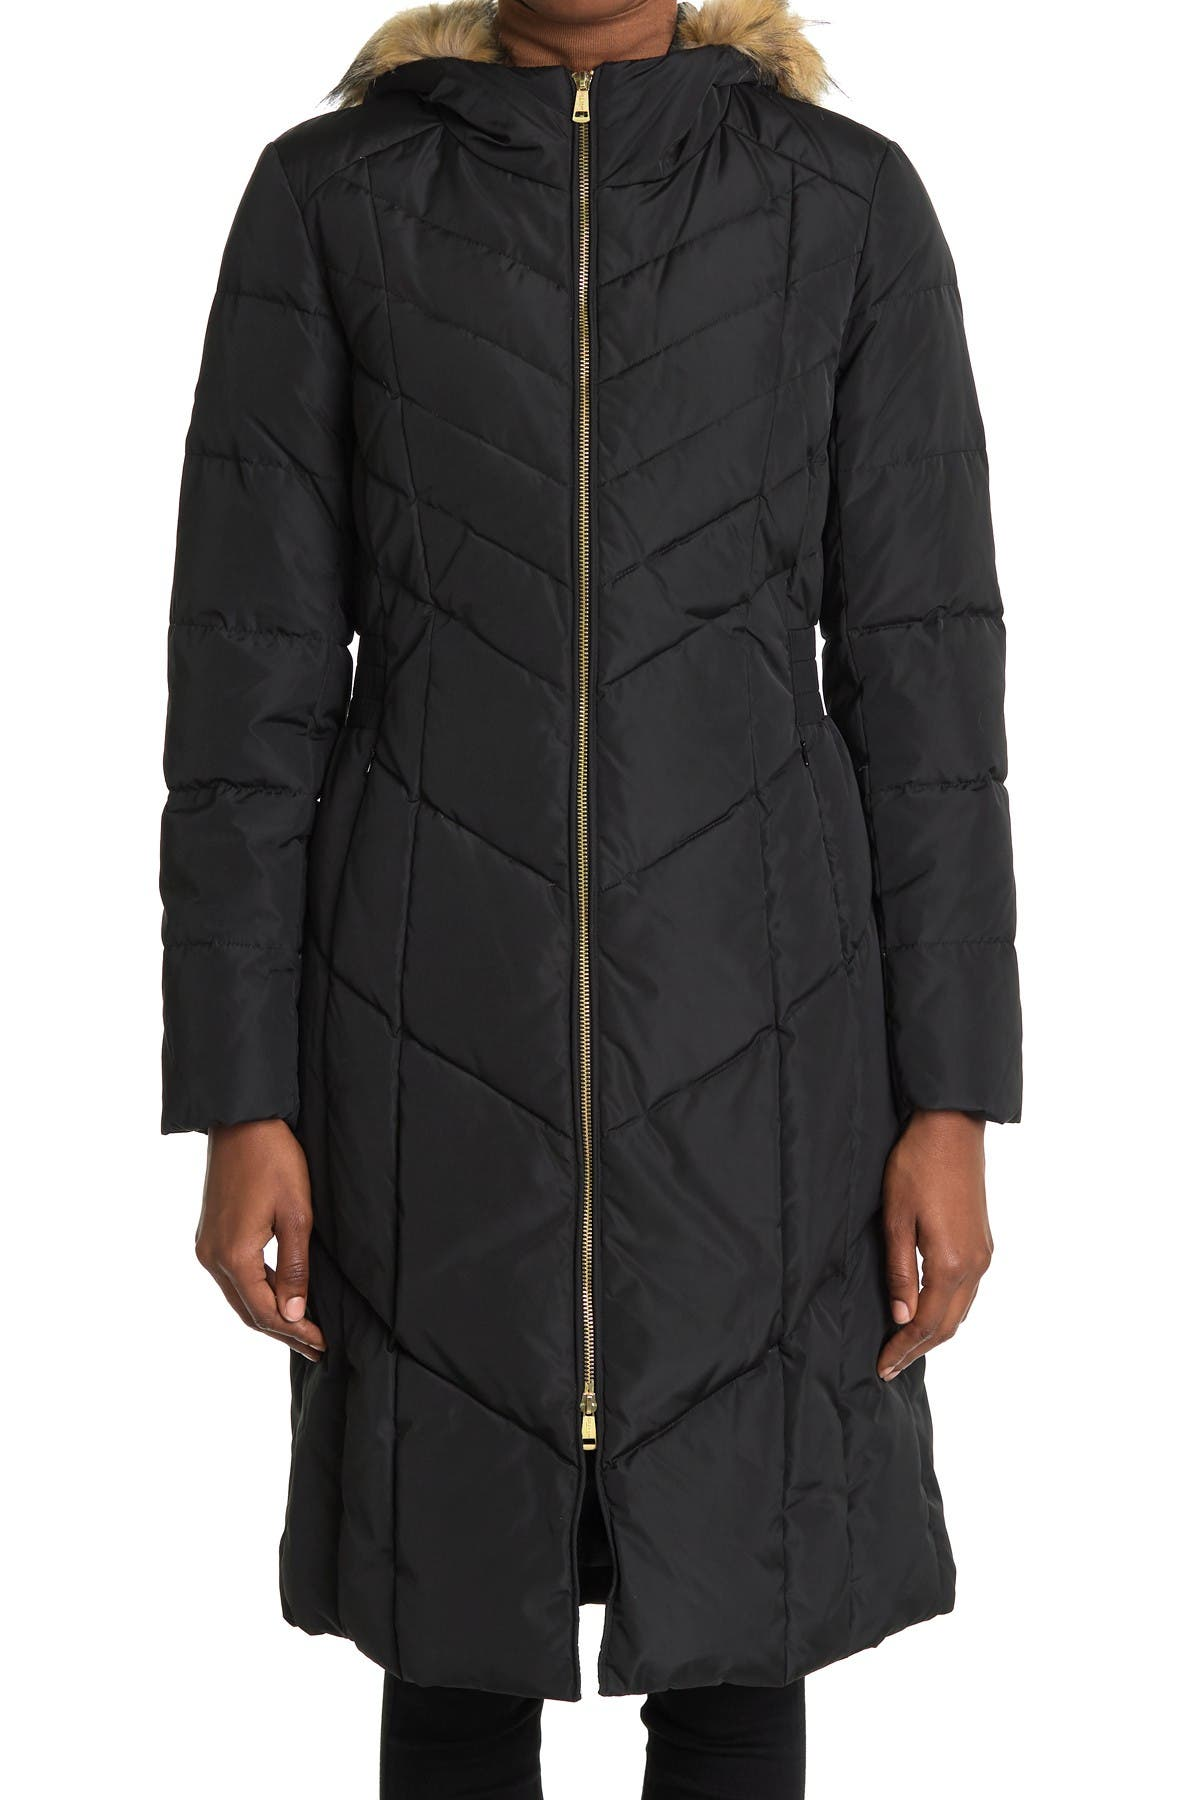 Image of Cole Haan Puffer Down Faux Fur Trim Hooded Long Coat